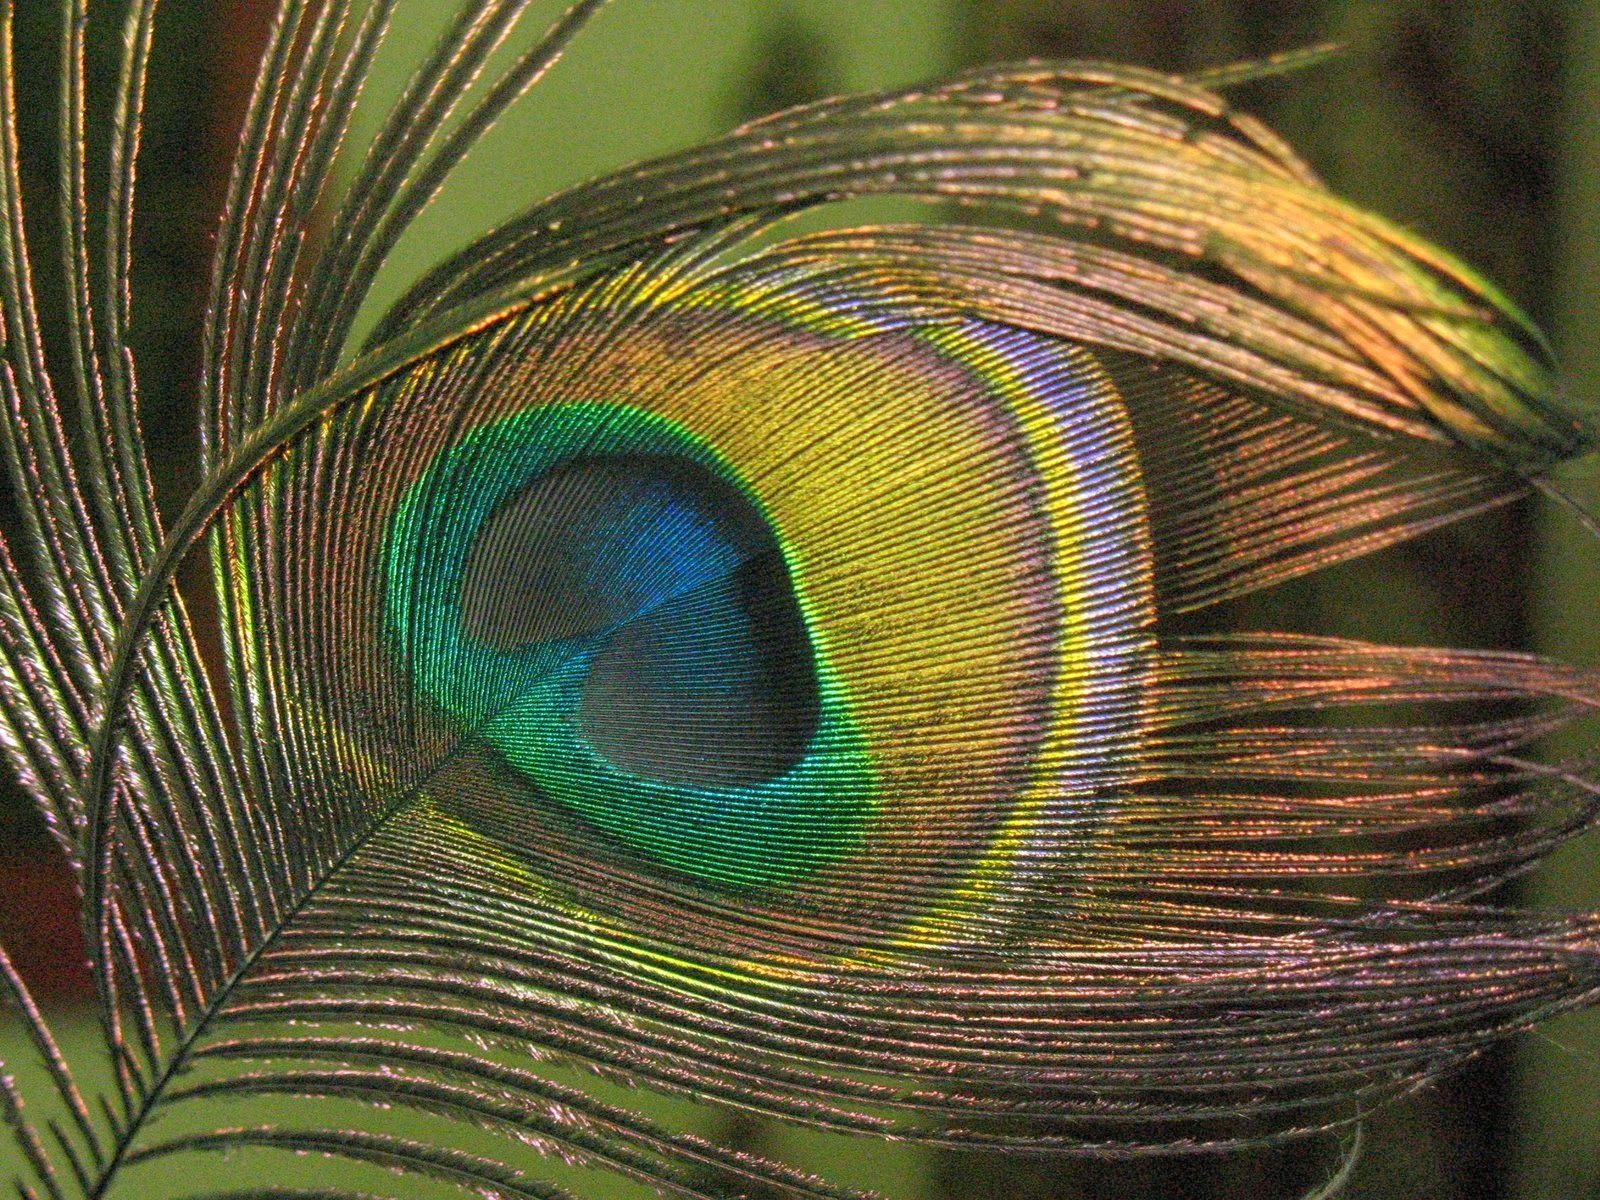 Totall All Pixz 1080p: Peacock HD Wallpapers